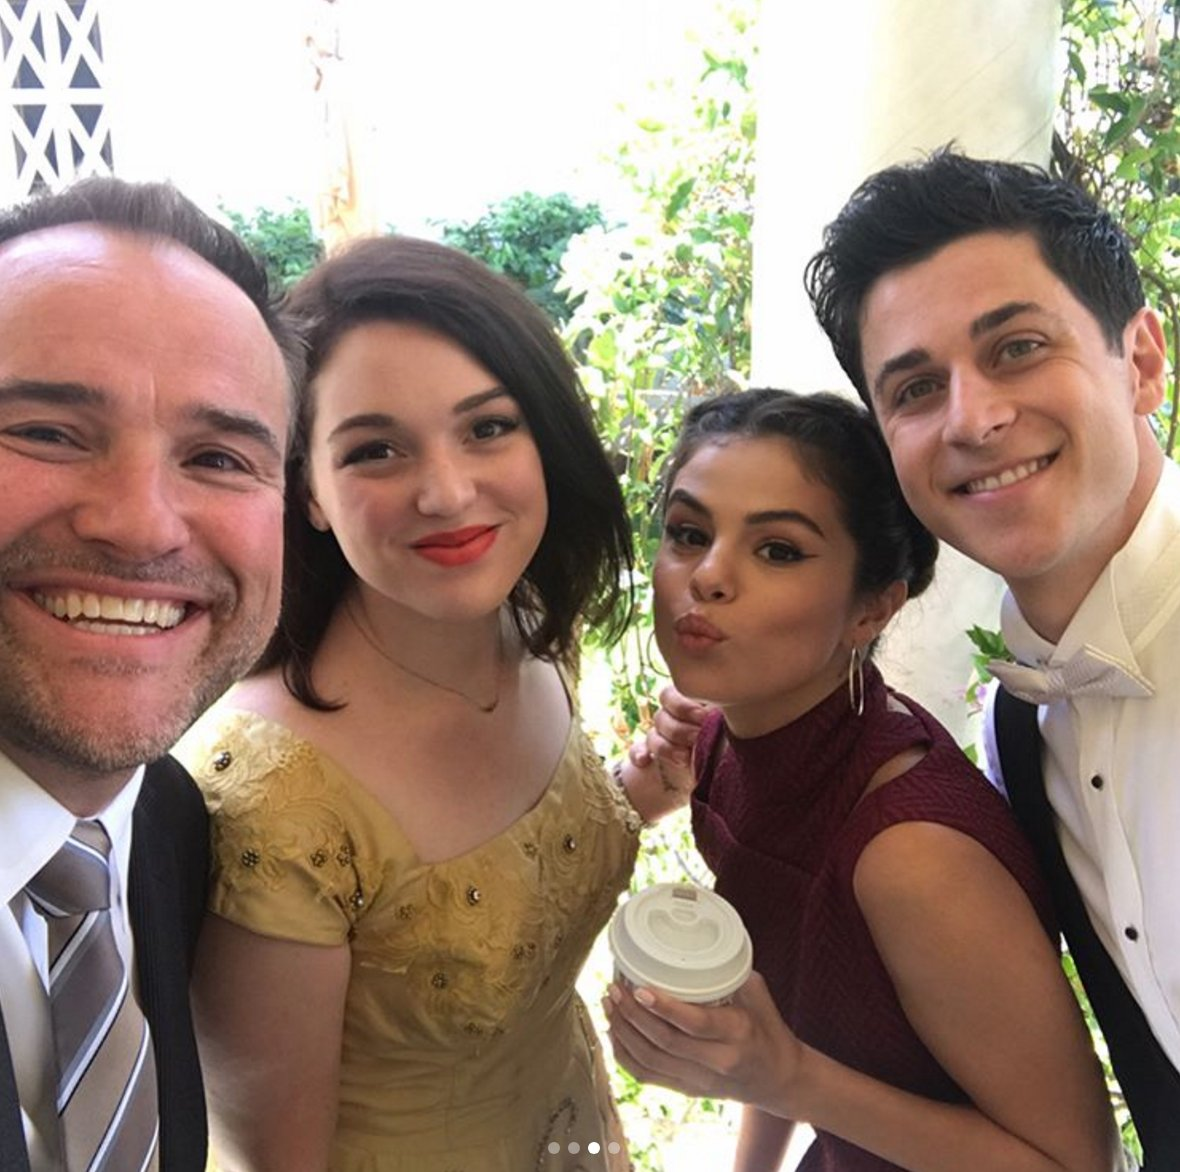 The #WizardsOfWaverlyPlace cast reunited for @DavidHenrie's wedding: h...